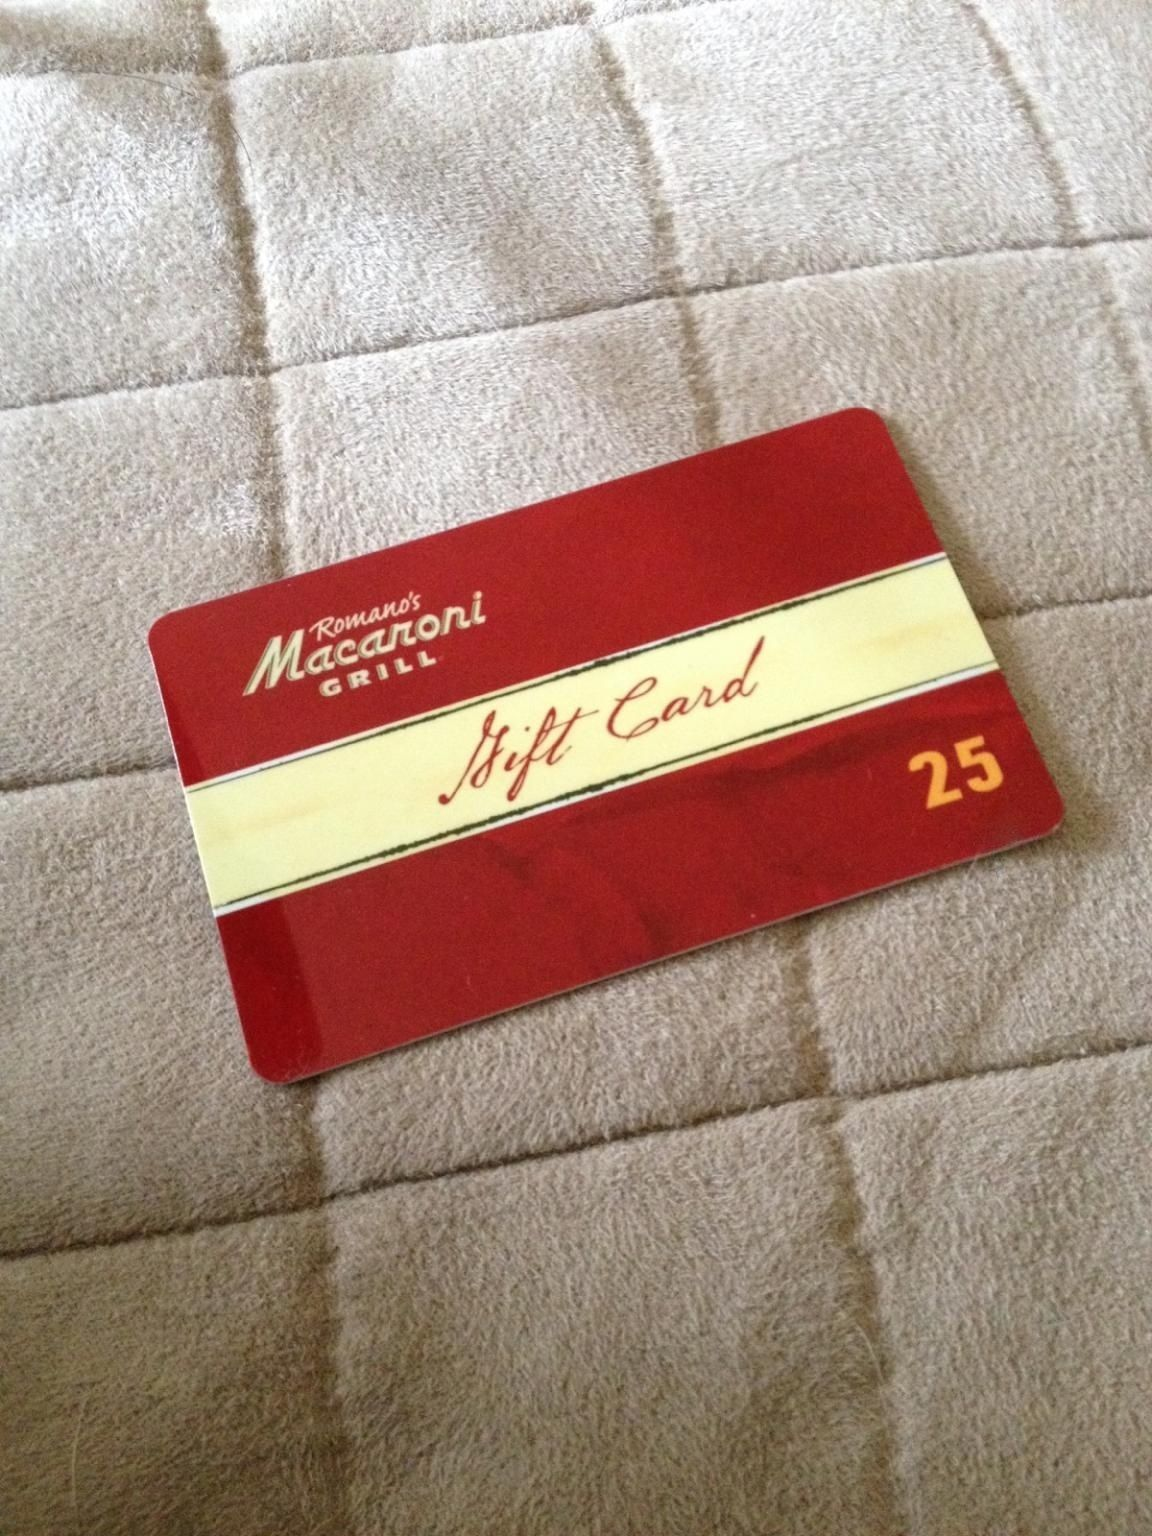 Coupons giftcards 25 macaroni grill chilis on the